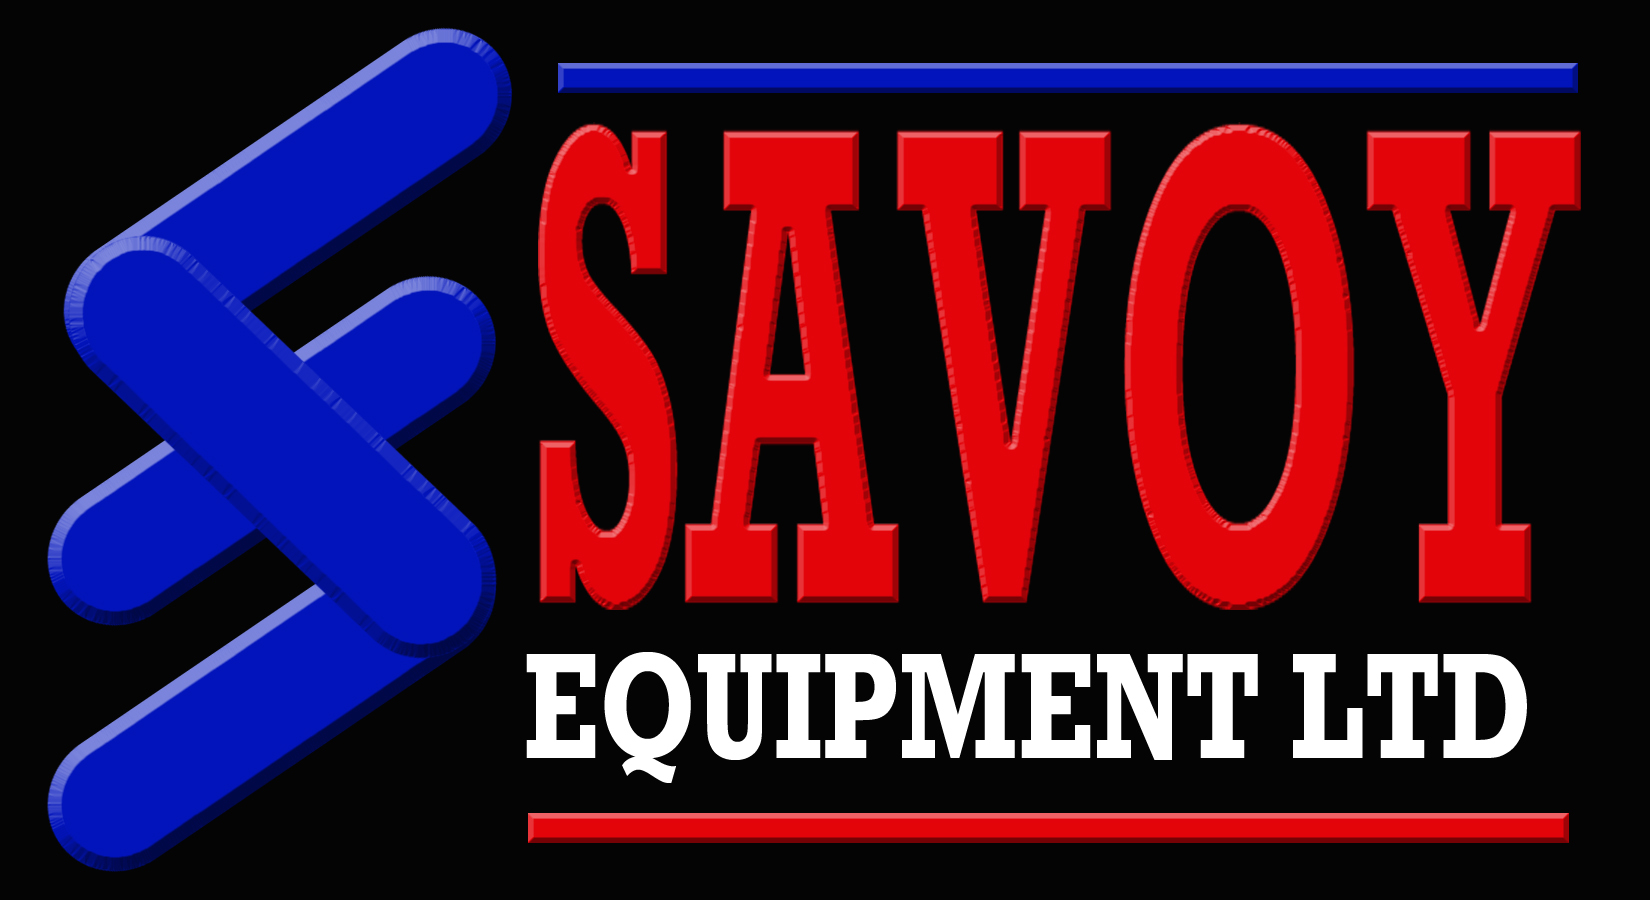 Logo Design by Kitz Malinao - Entry No. 94 in the Logo Design Contest Inspiring Logo Design for Savoy Equipment Ltd..